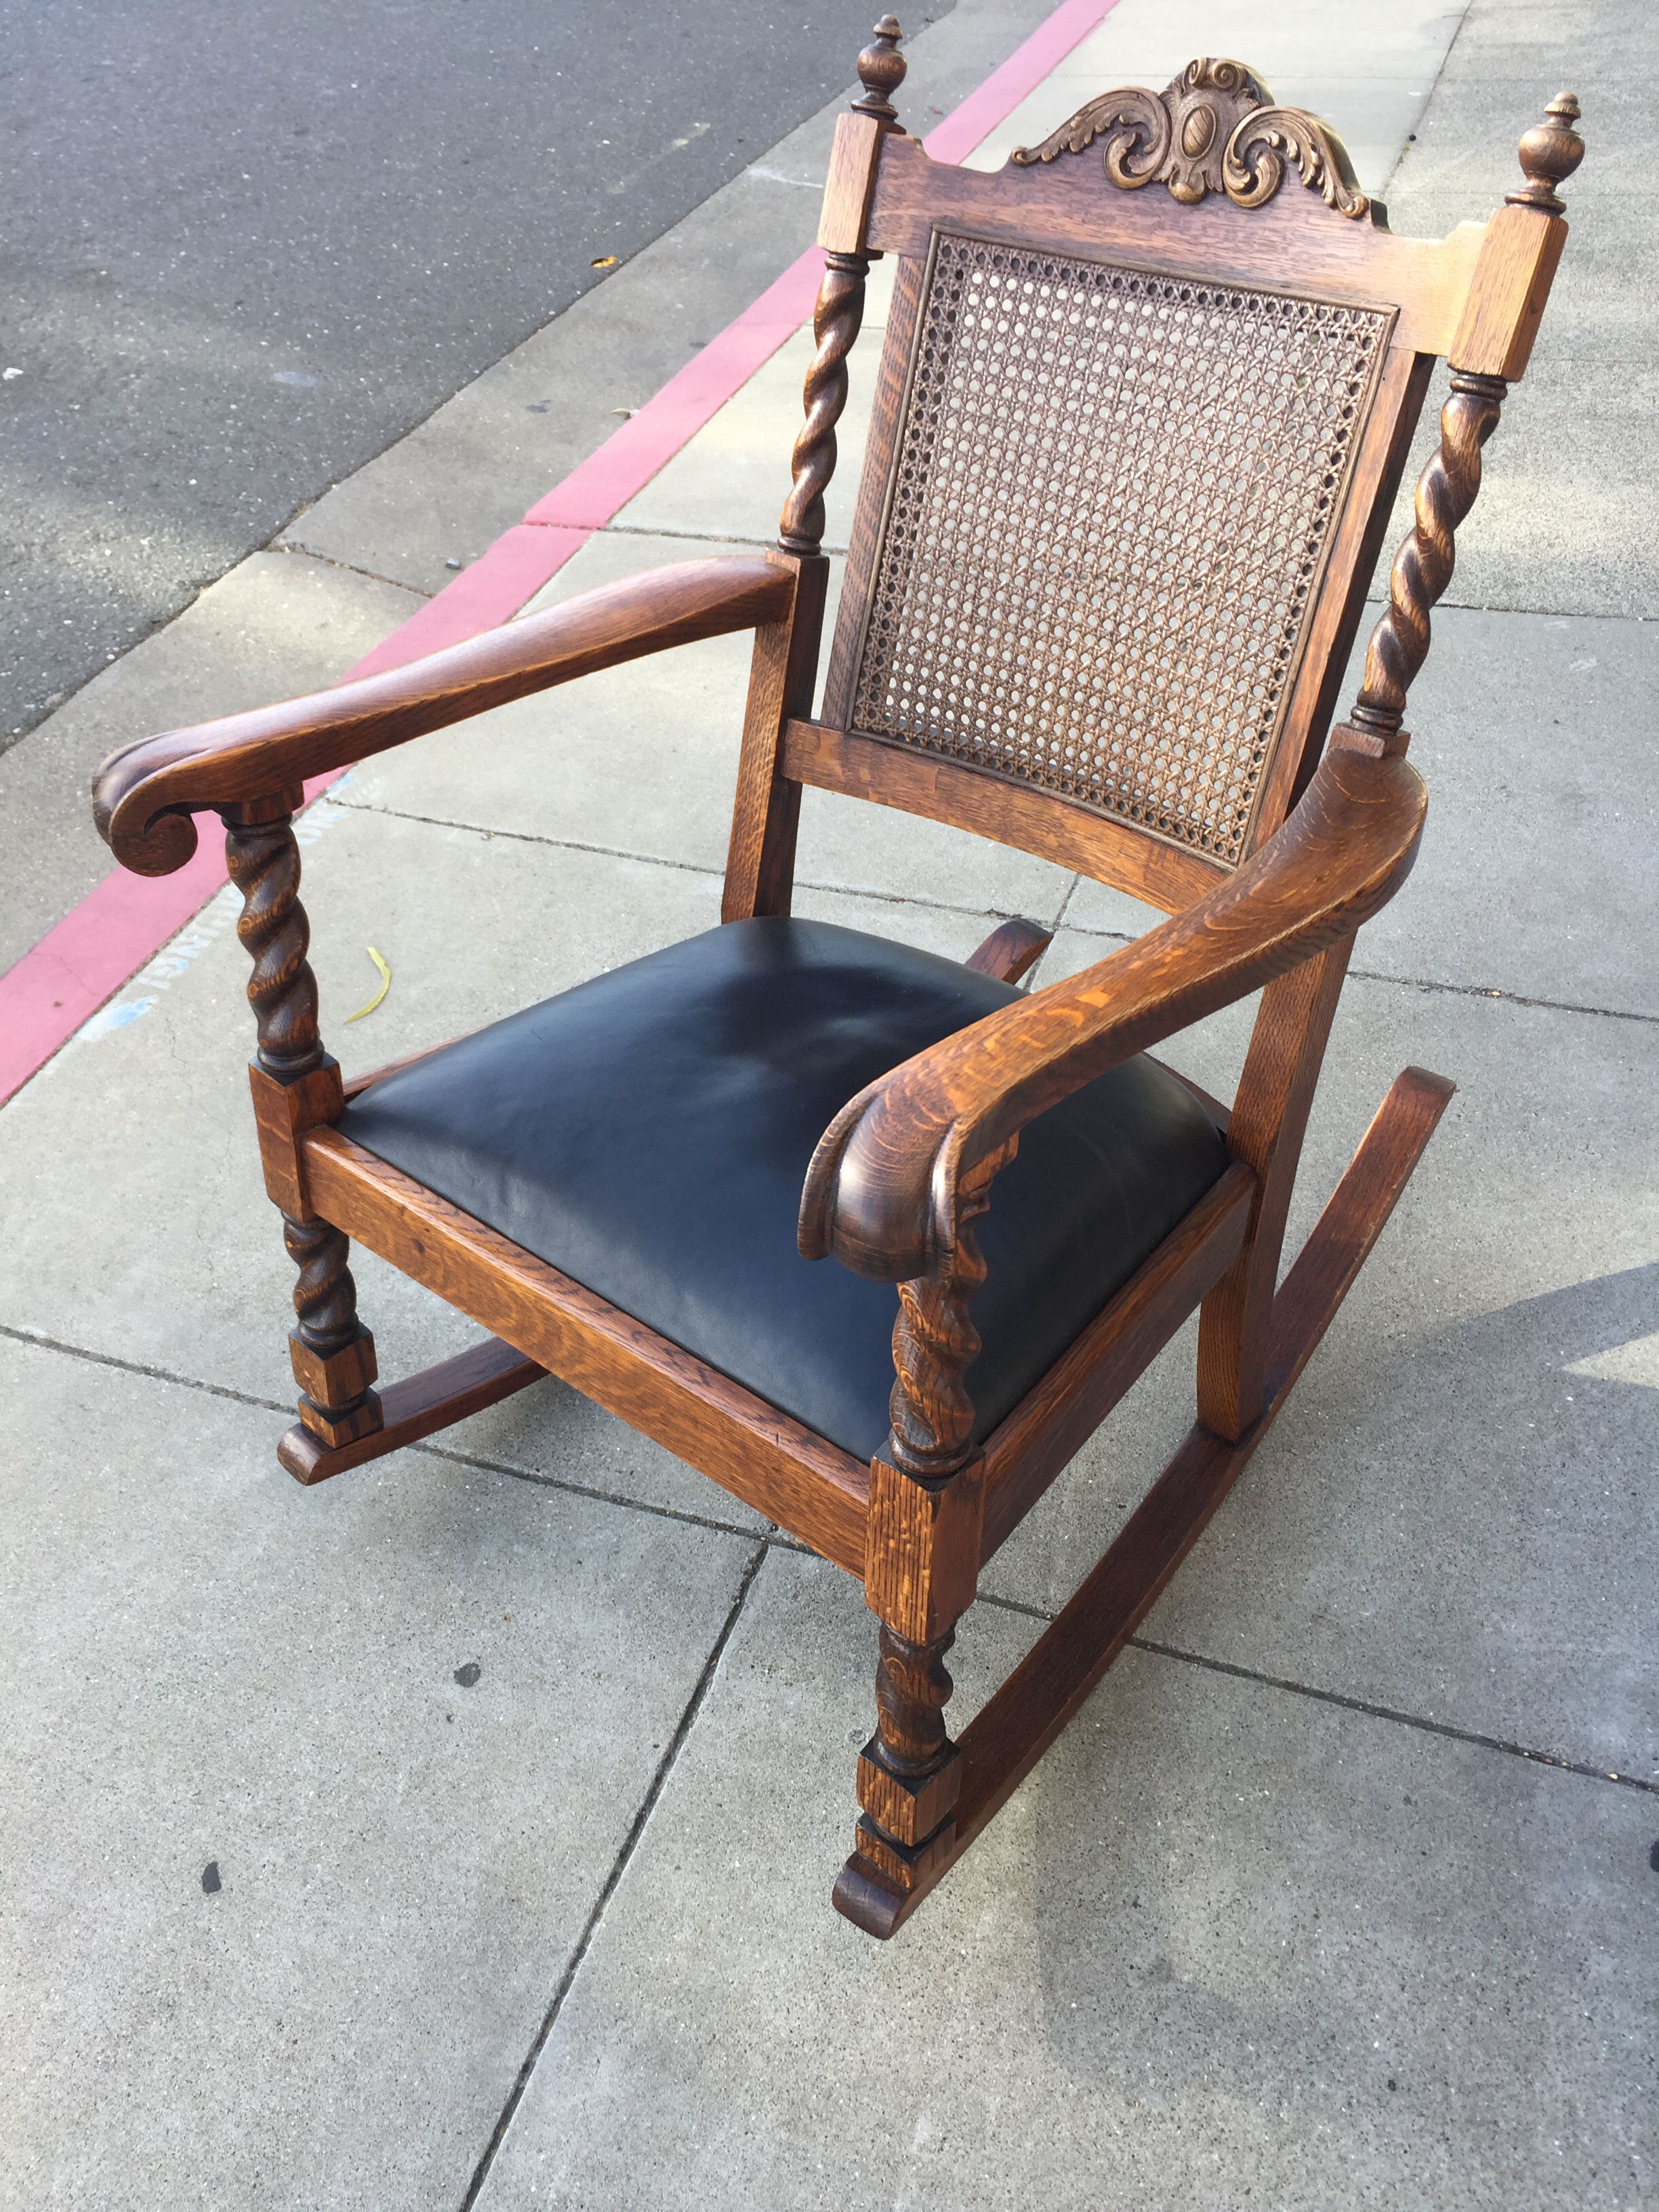 Genial Animal Skin Antique Leather Cane Rocking Chair For Sale   Image 7 Of 7